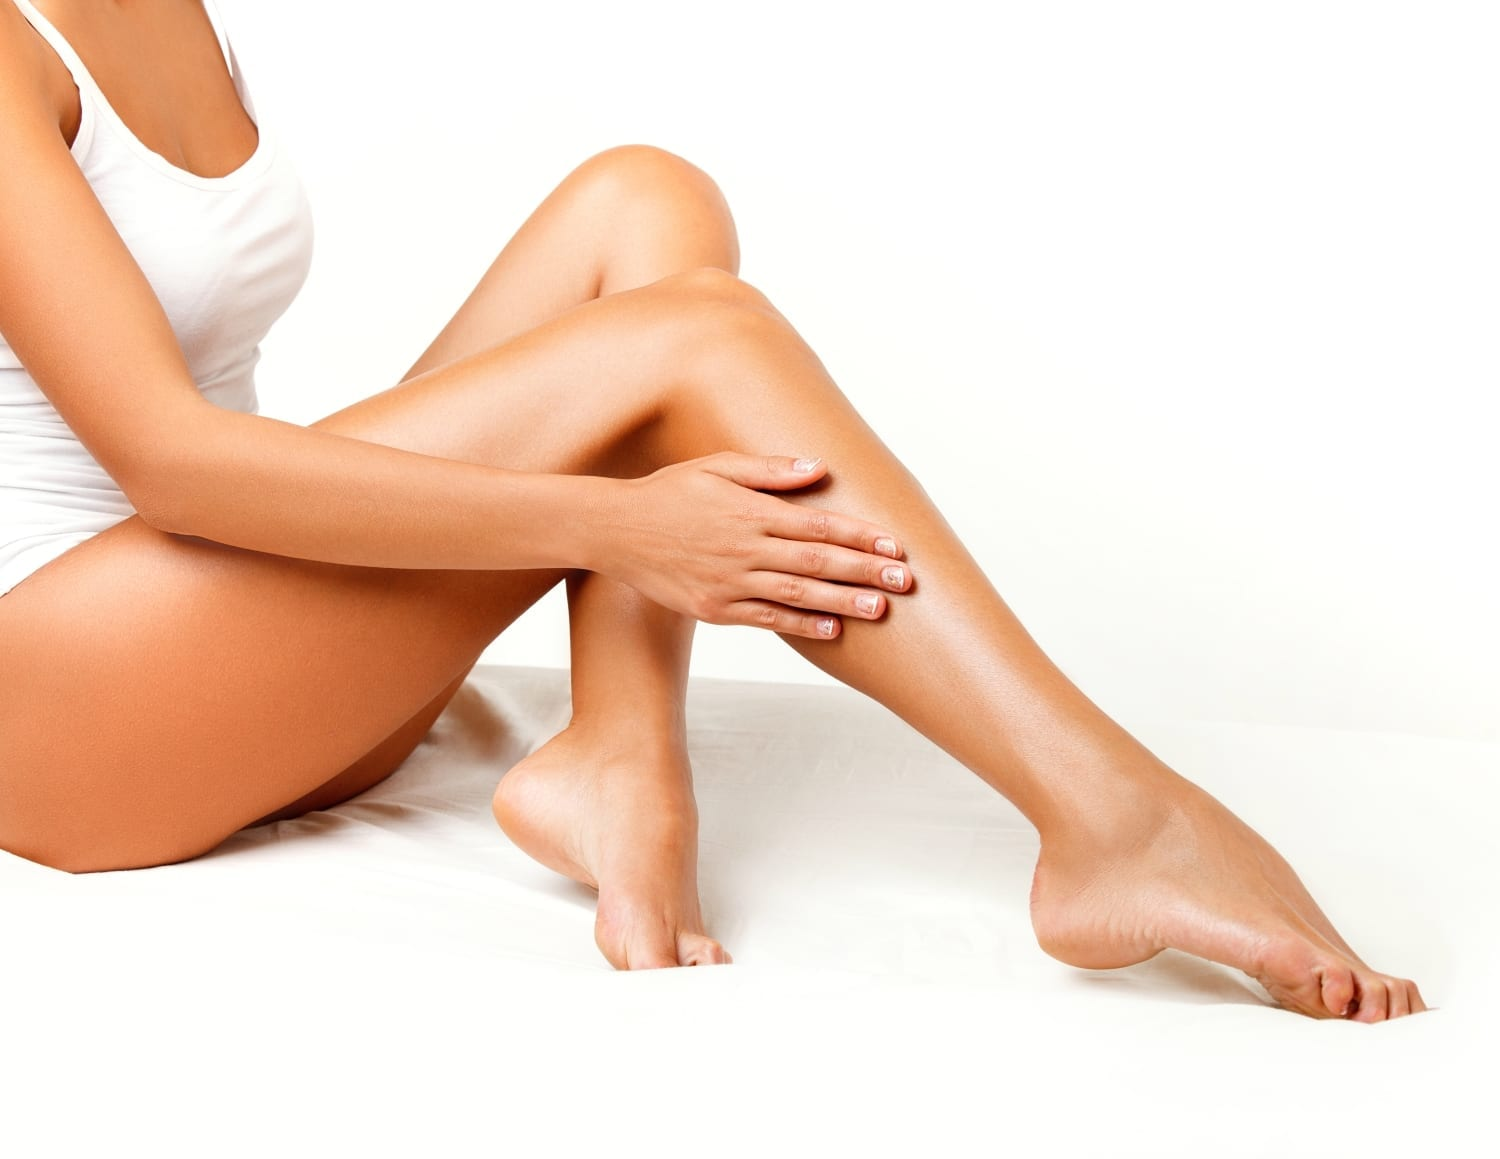 laser hair removal - women with silky smooth legs